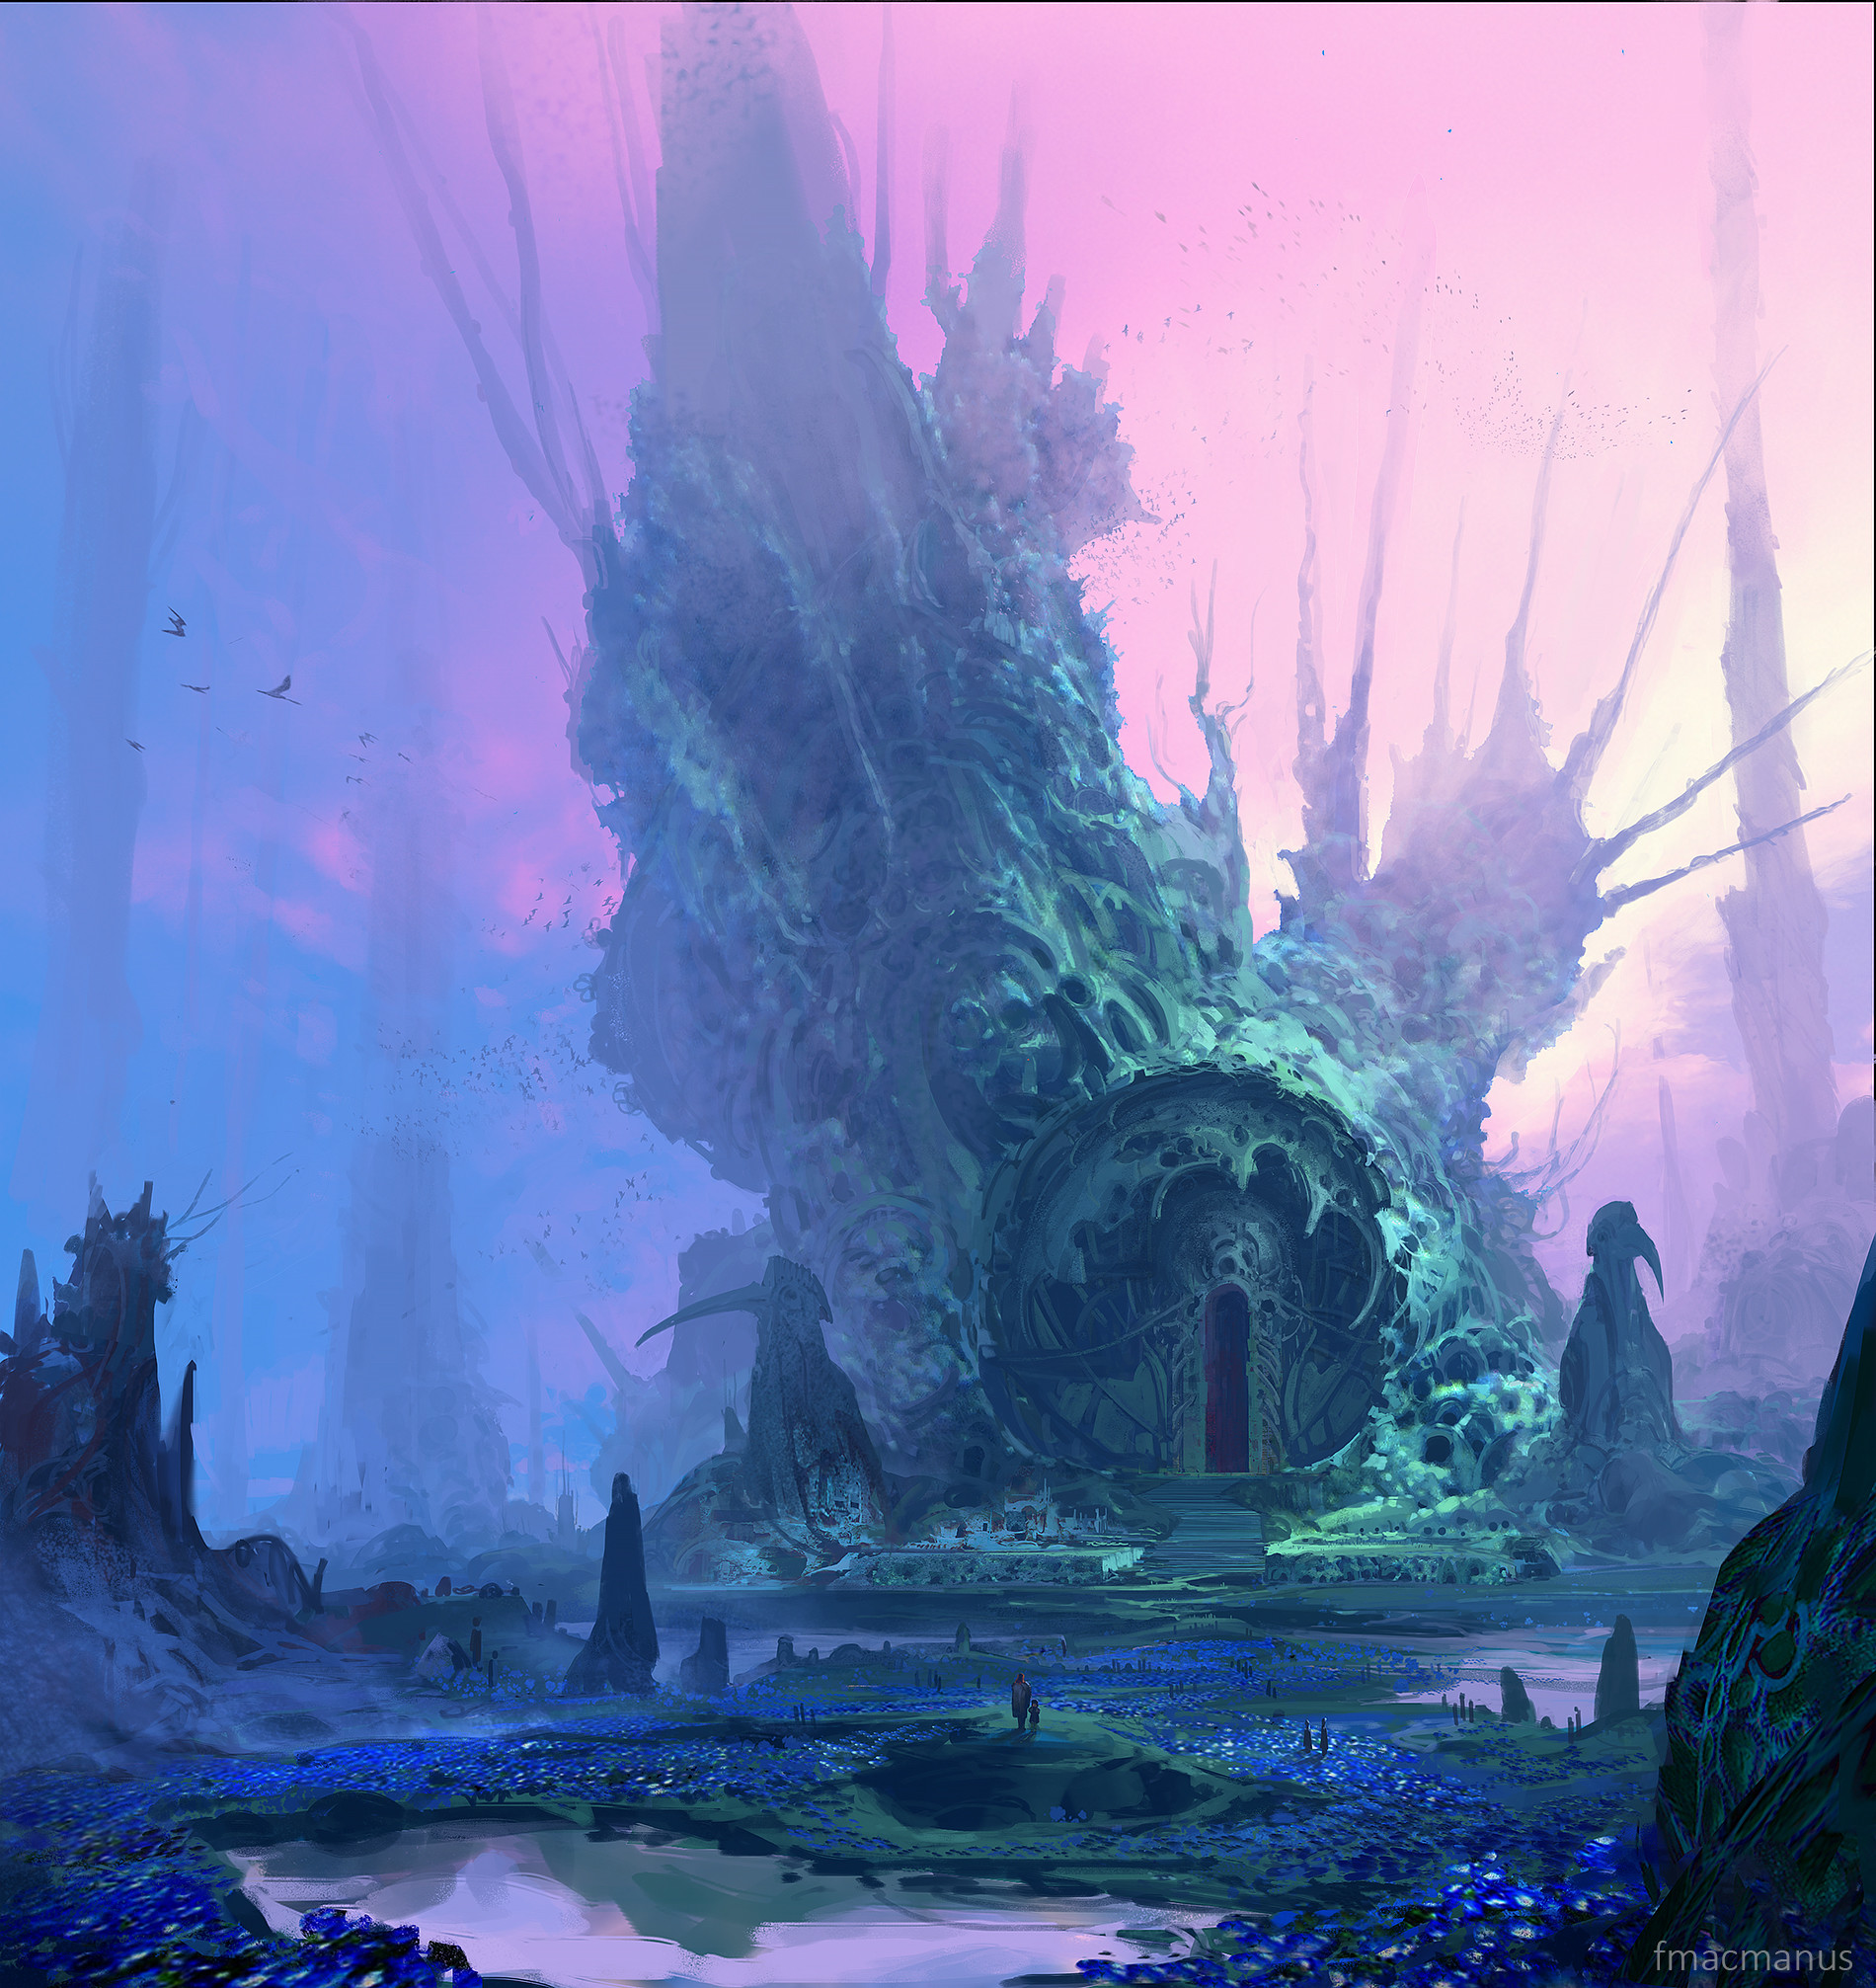 traditional religious ancient coral structure worldbuilding design photoshop